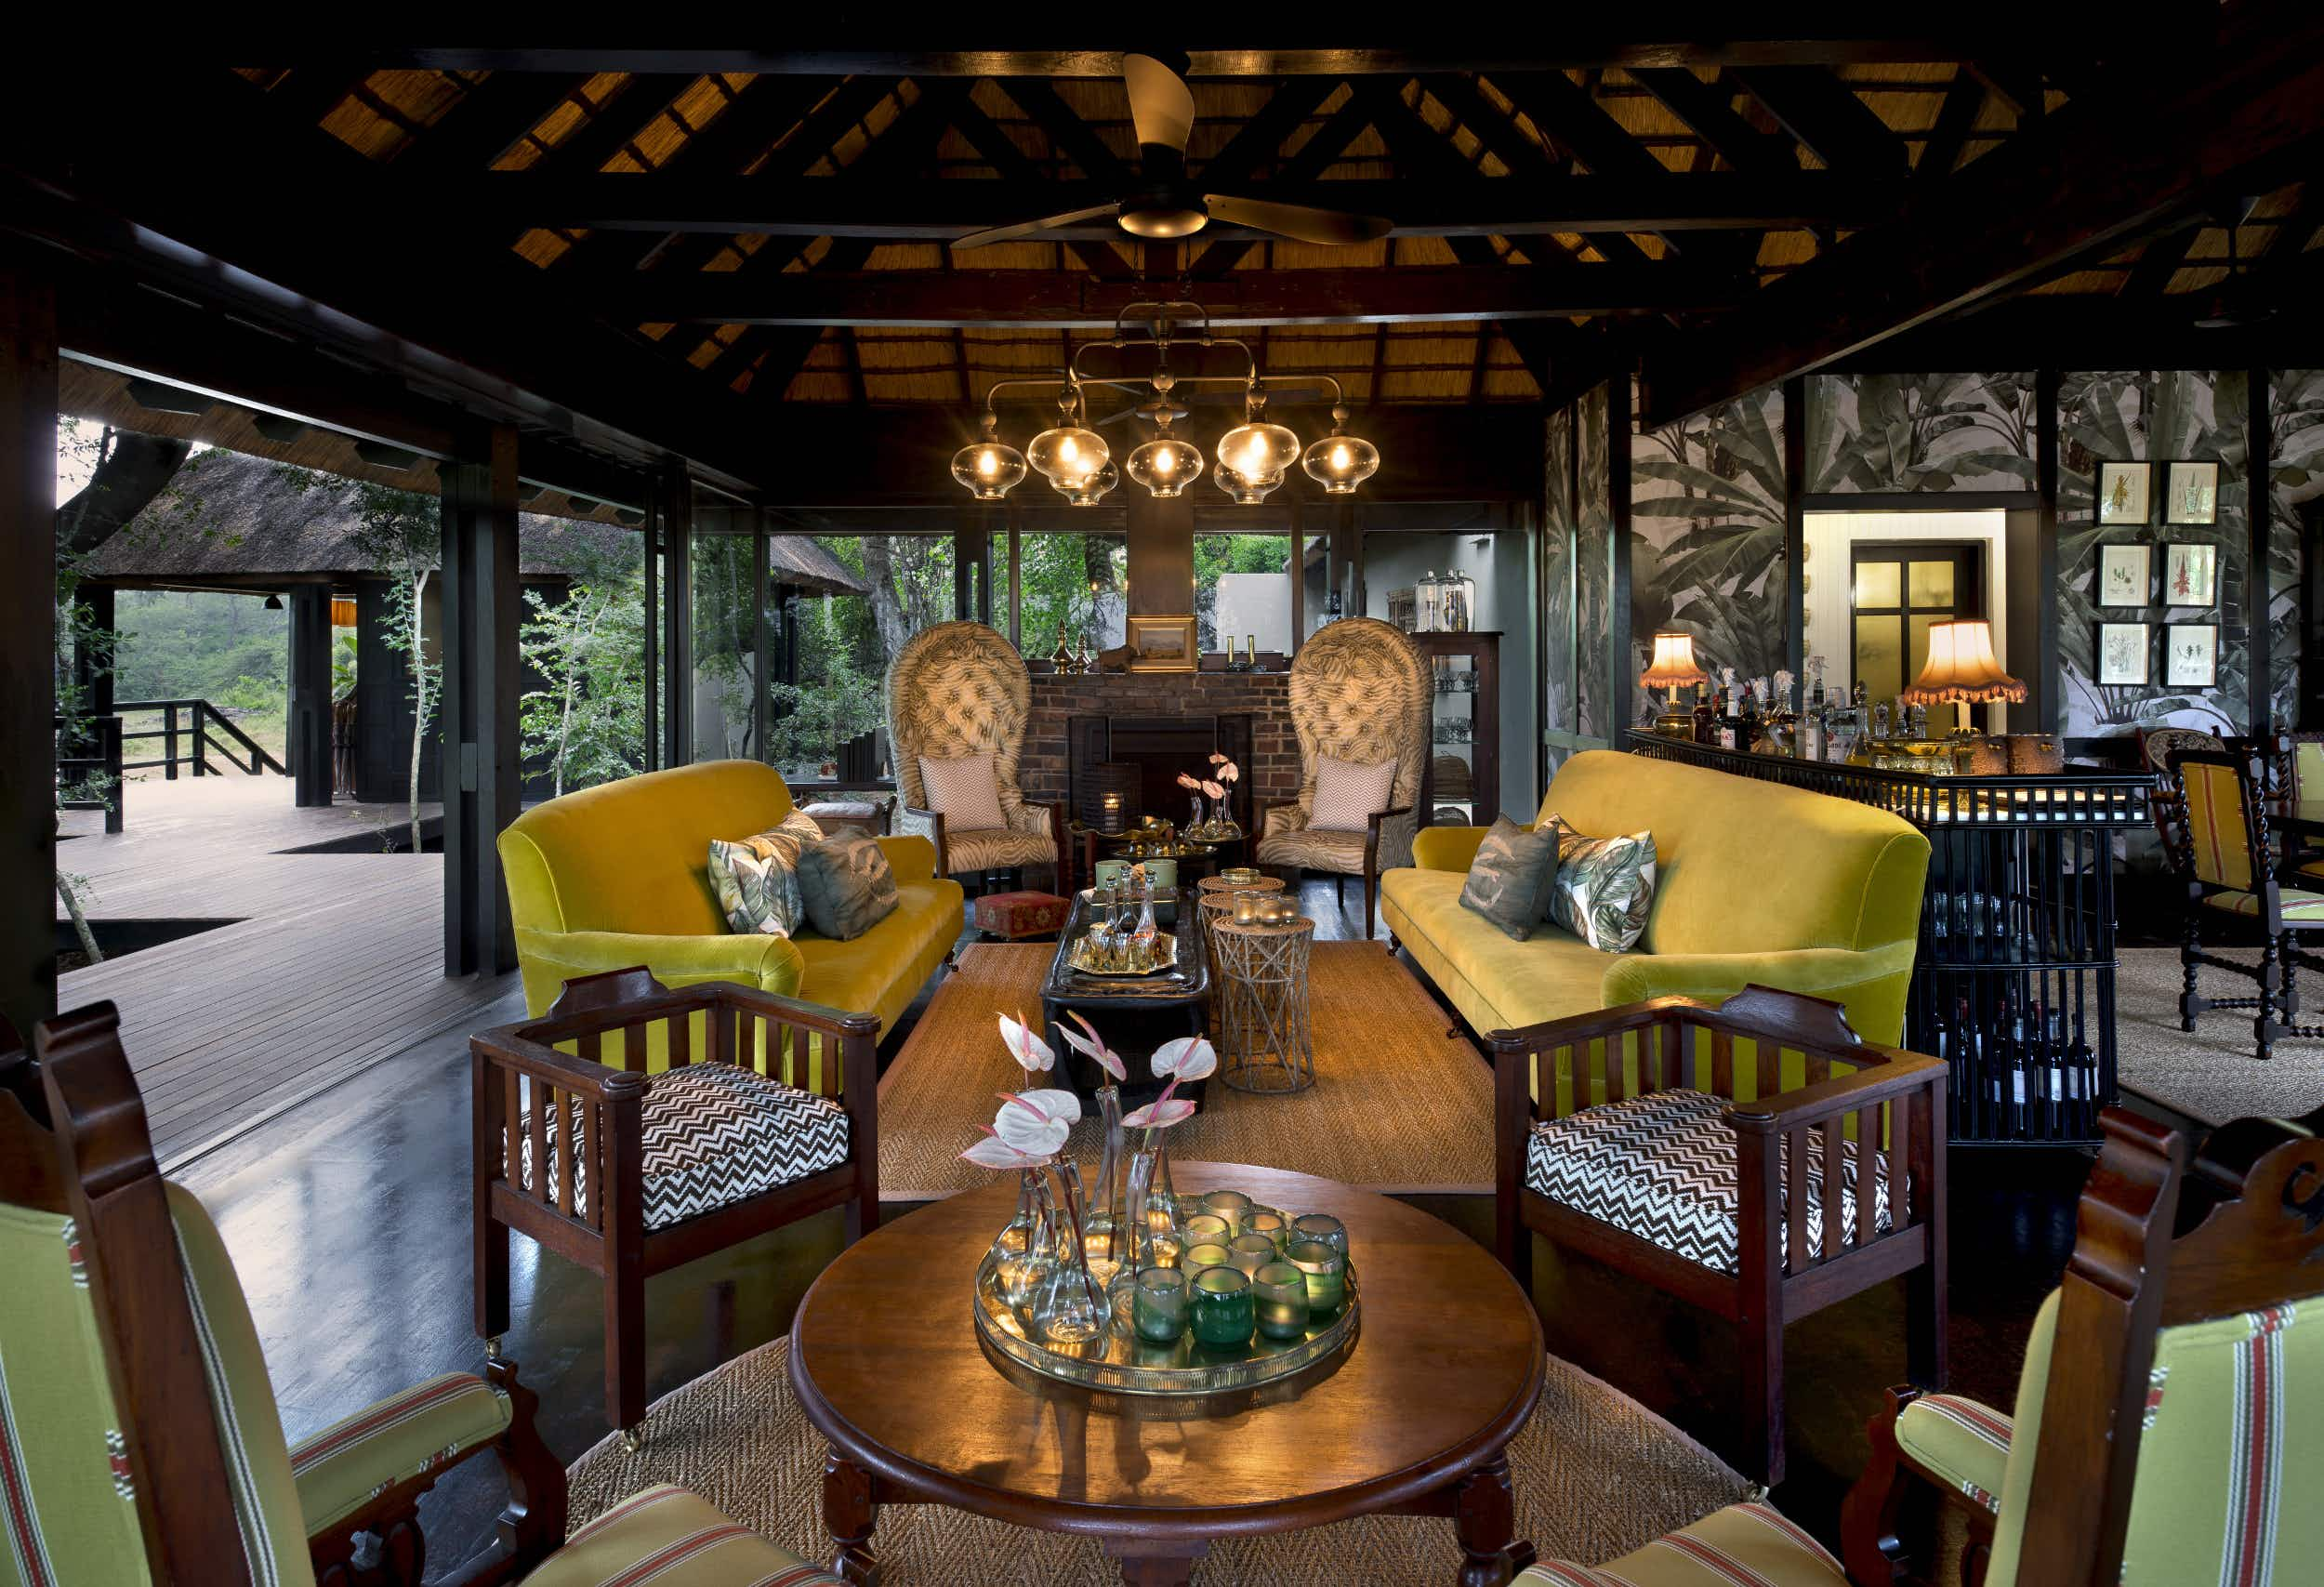 South Africa's latest luxury lodge takes its inspiration from Southeast Asia